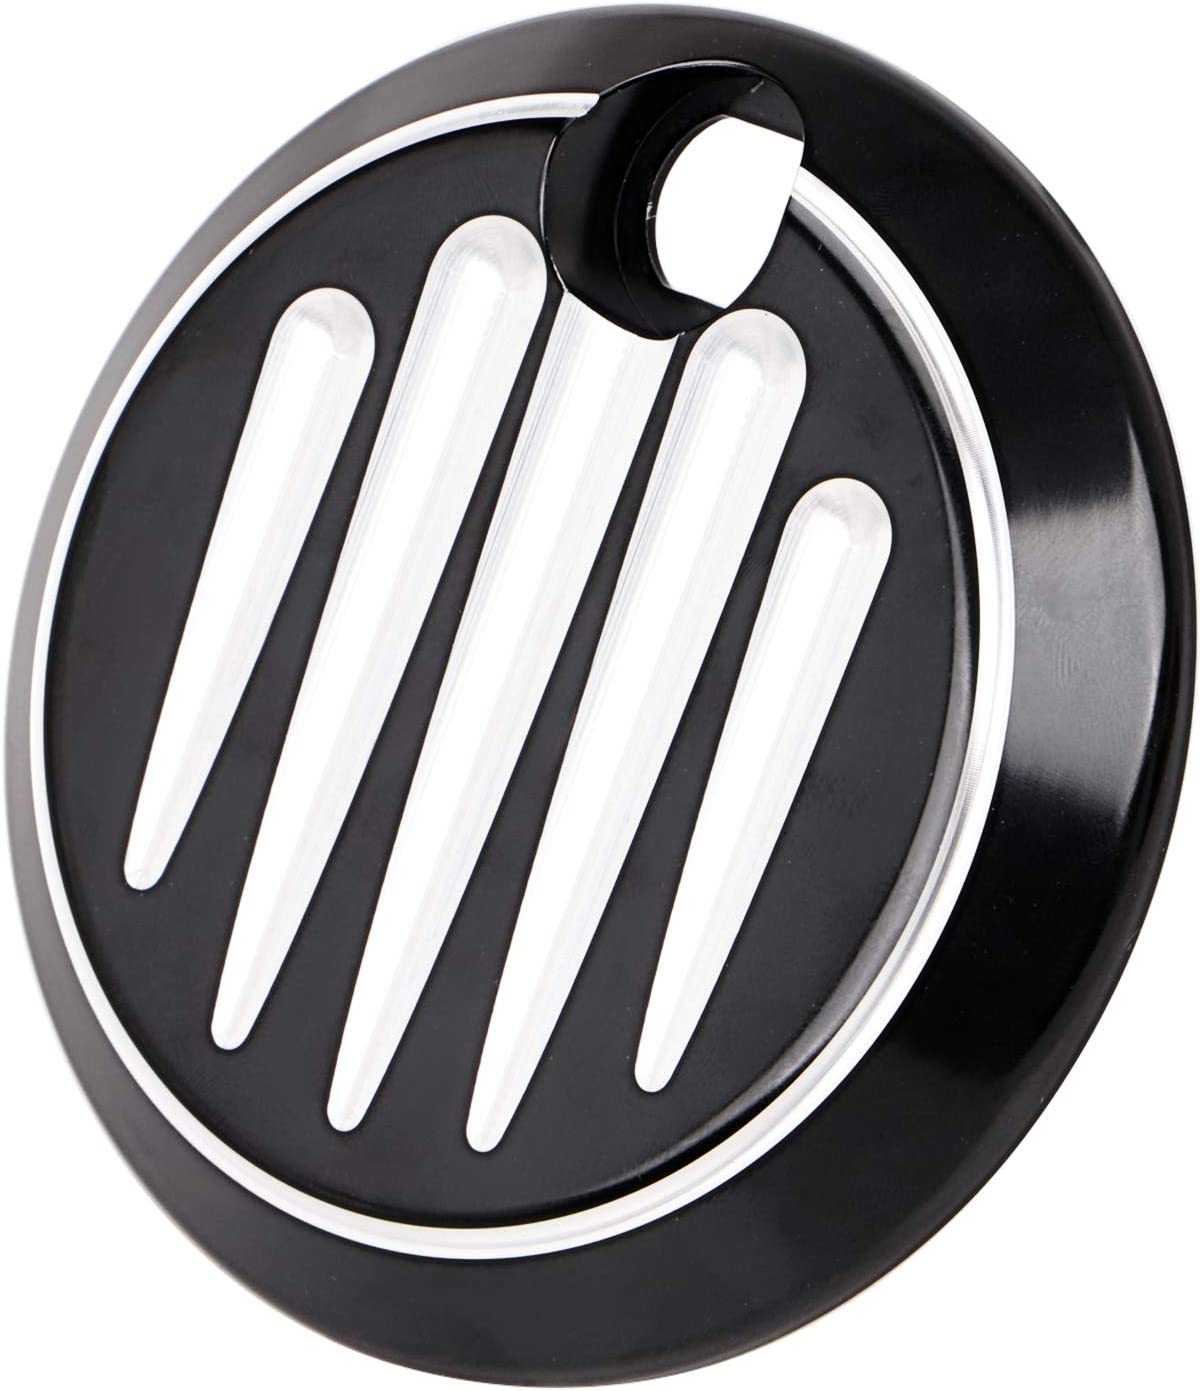 Road King FLHR Three T CNC Gas Tank Fuel Door Cover Cap Compatible with Harley Touring Electra Glide FLHT Road Glide FLTR 1992-2007 Street Glide FLHX